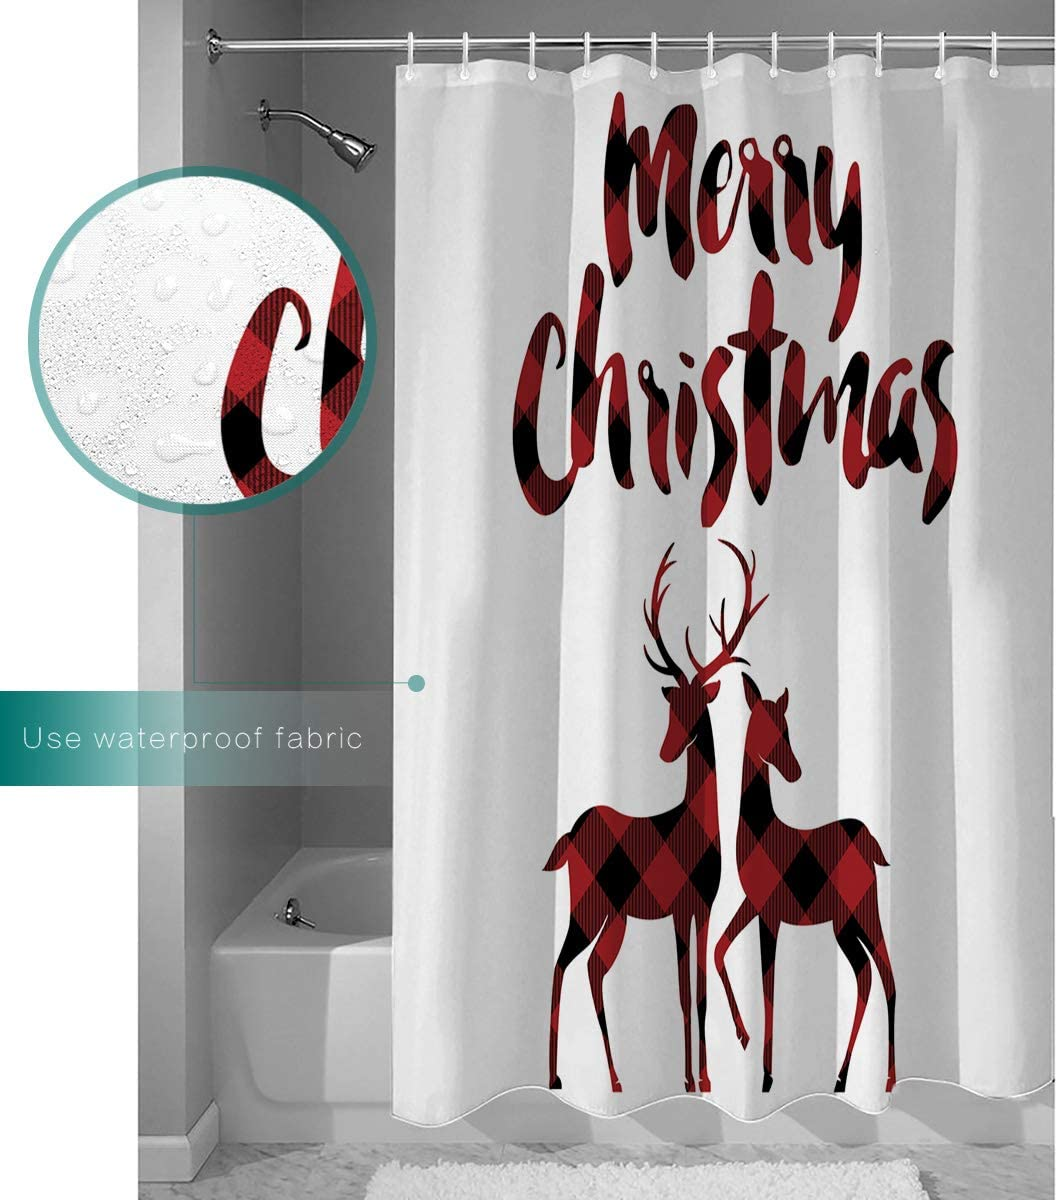 Shower Curtain Sets for Bathroom-Merry Christams Red Black Buffalo Plaid Snowman,Waterproof Polyester Fabric Decorative Bath Curtain with Hooks for Bathroom Bathtubs 72 Inches